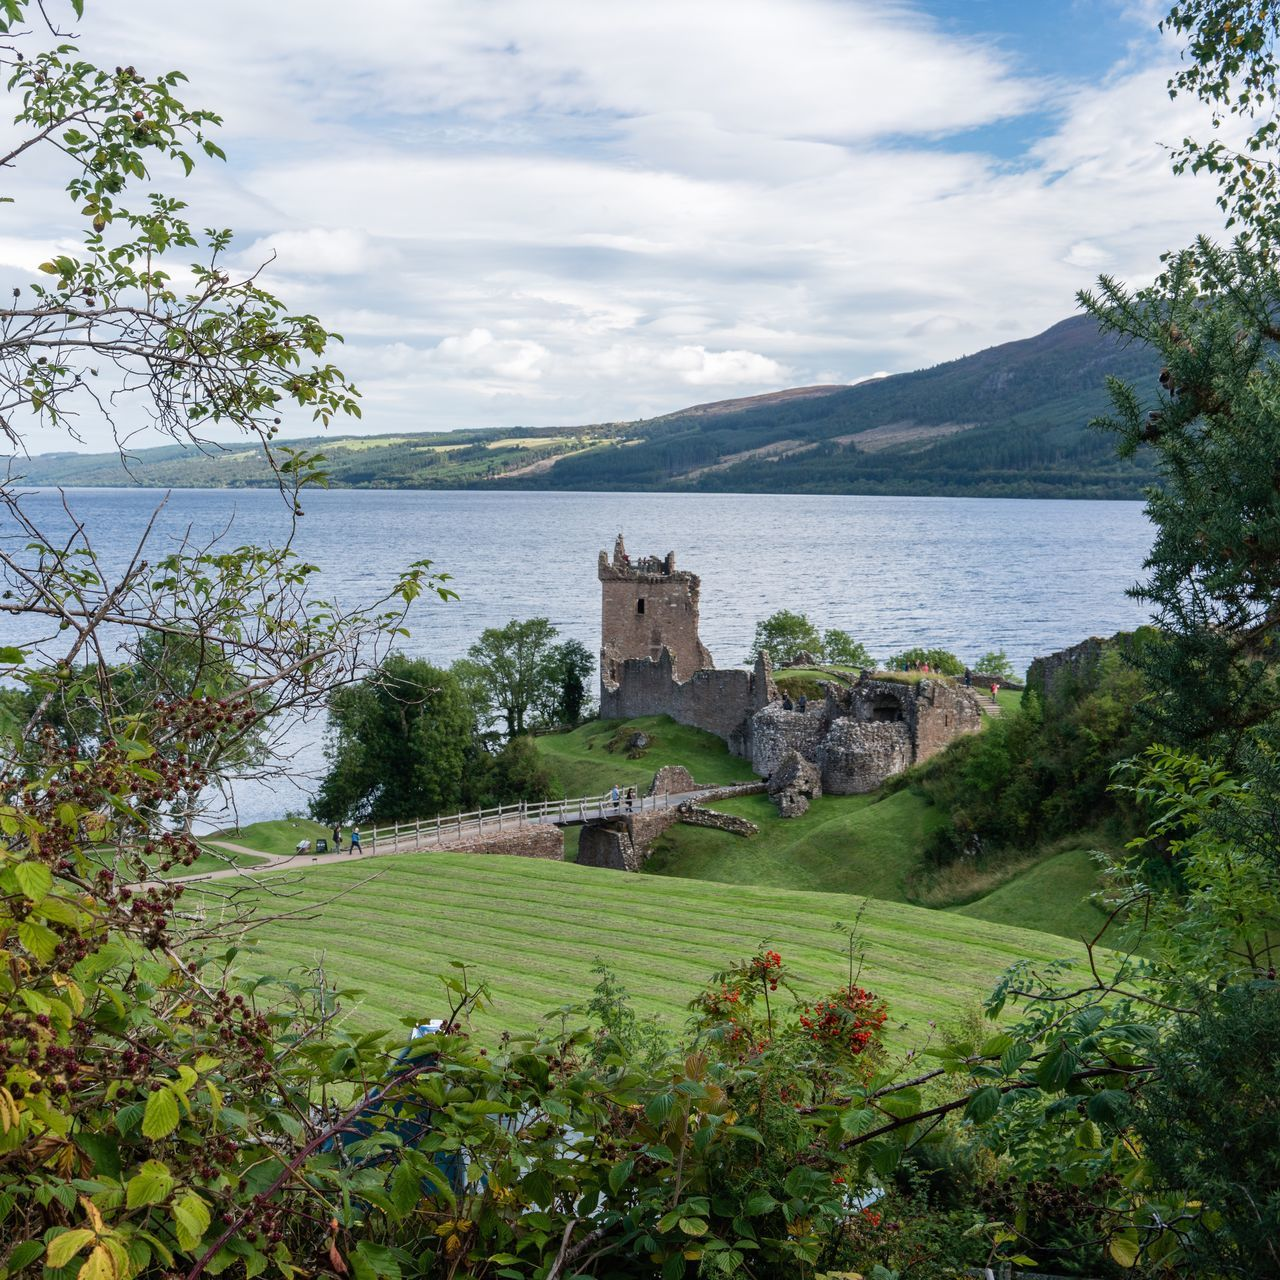 Tree Sky Travel Destinations Architecture Cultures Scenics No People Outdoors Water Nature Building Exterior Cloud - Sky Beauty In Nature Day Castle Lochness Loch  Lake Natural Frame UrquhartCastle Scotland Scottish Highlands Landscape